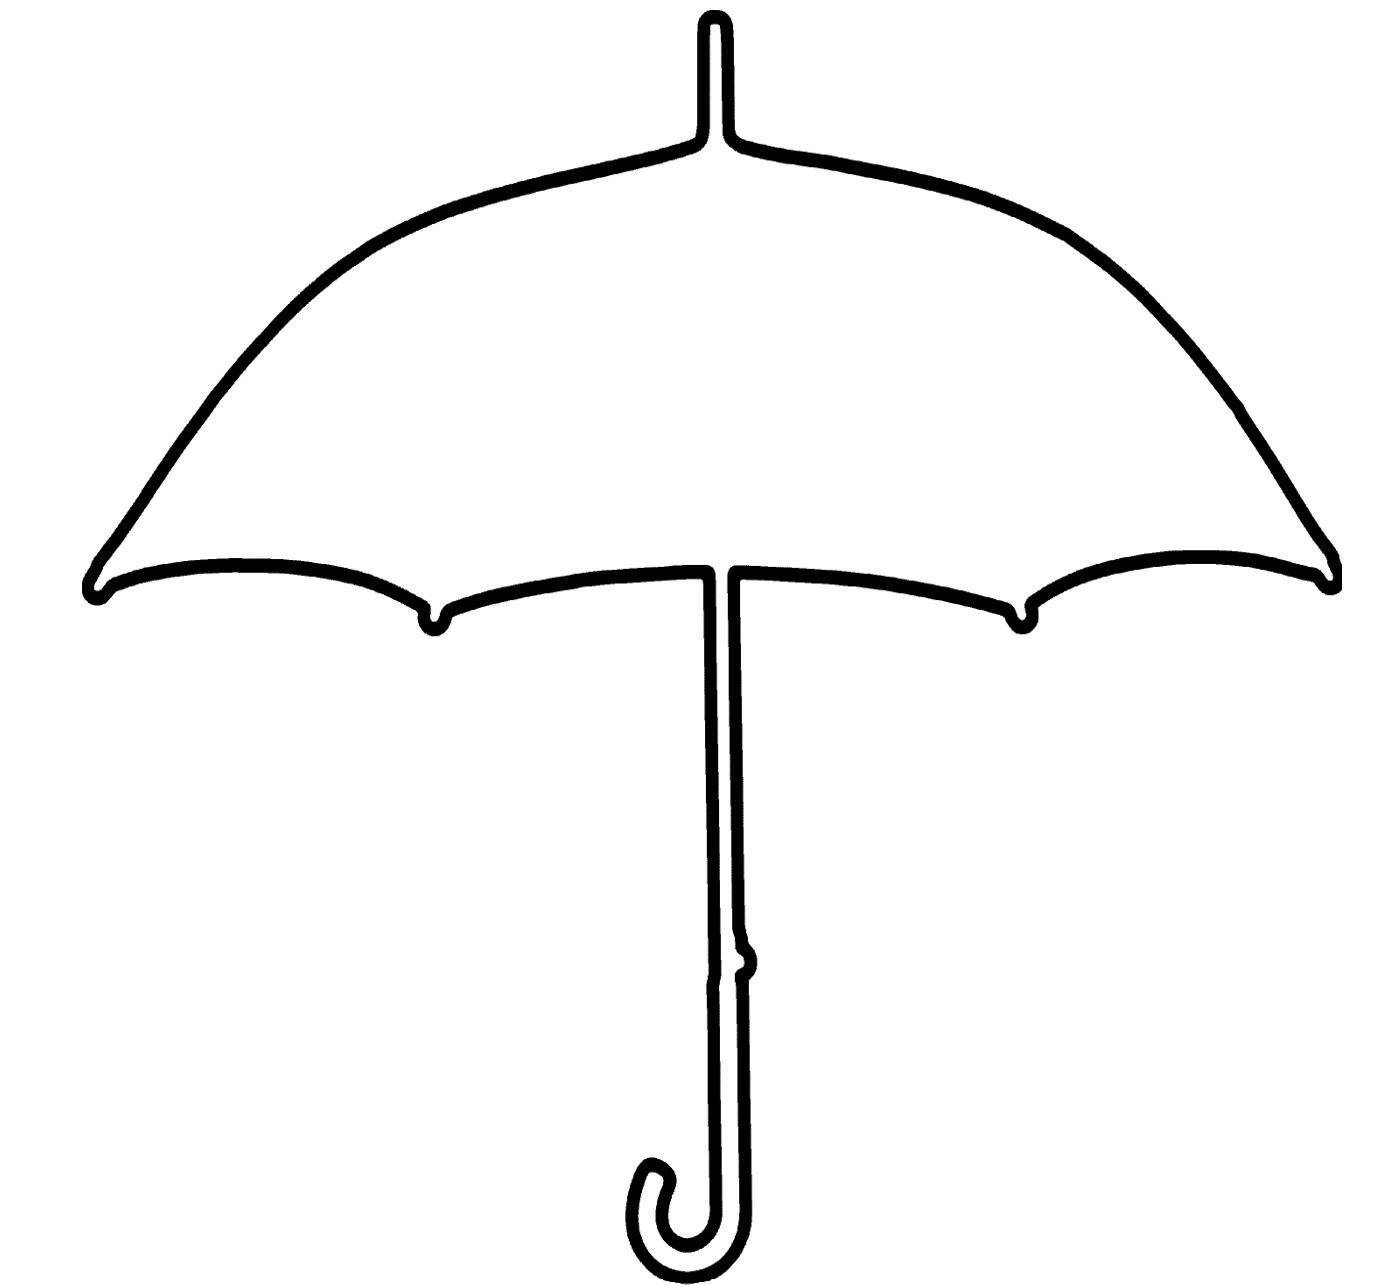 Picture Of Unbrella To Color - ClipArt Best